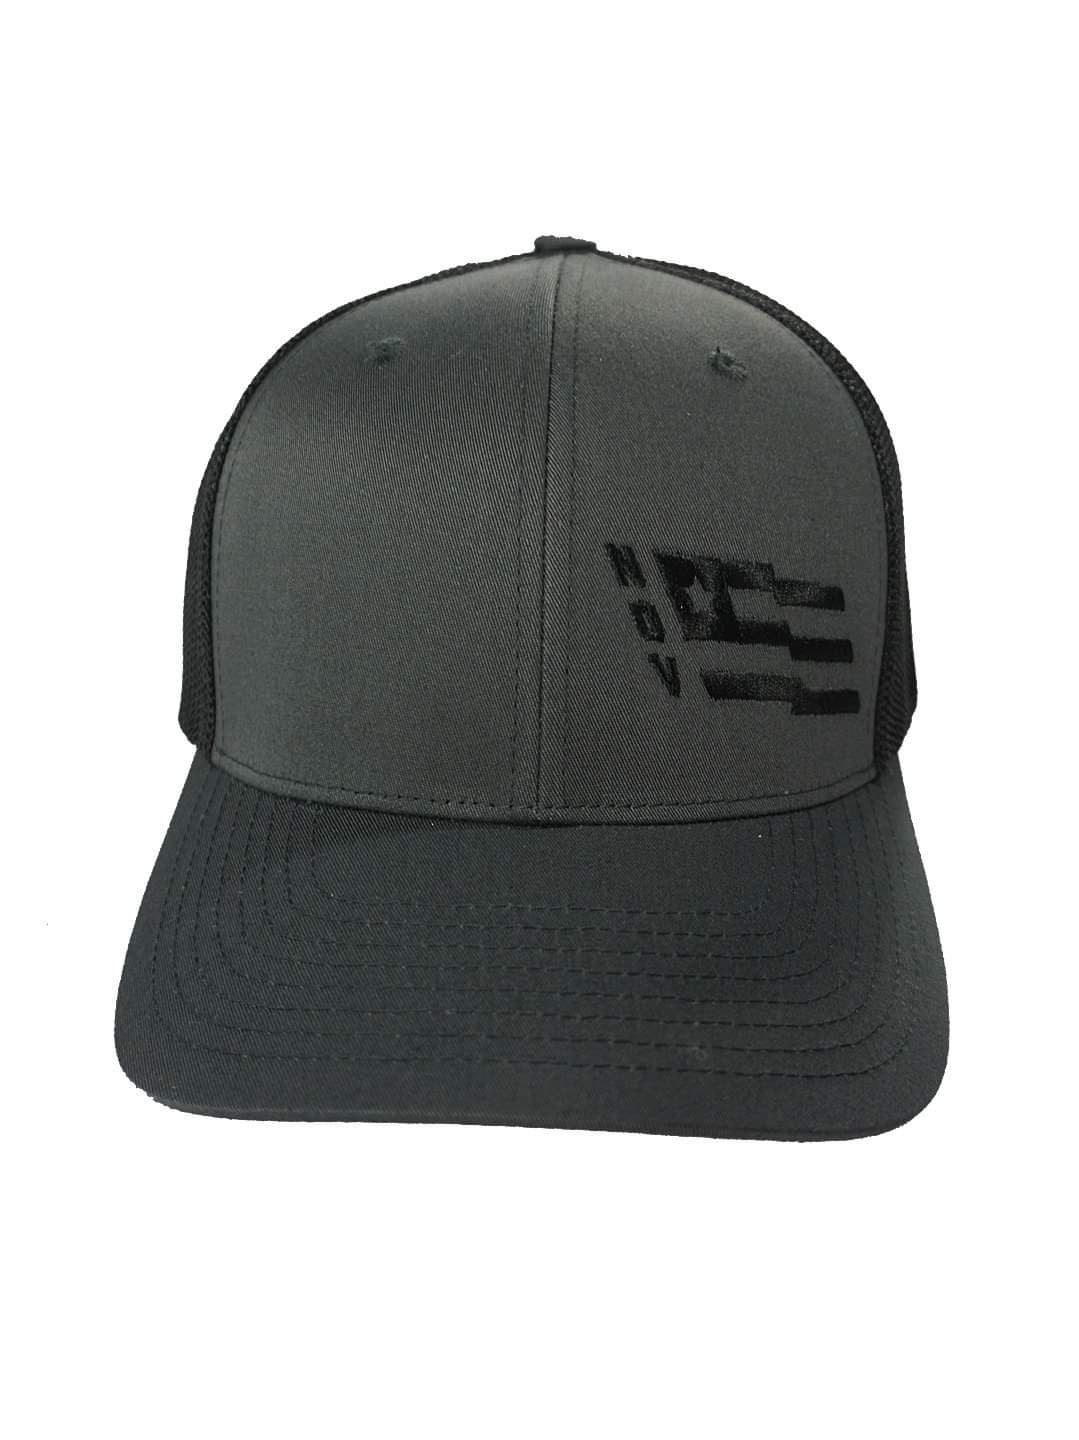 NOV Trucker - Grey/Black